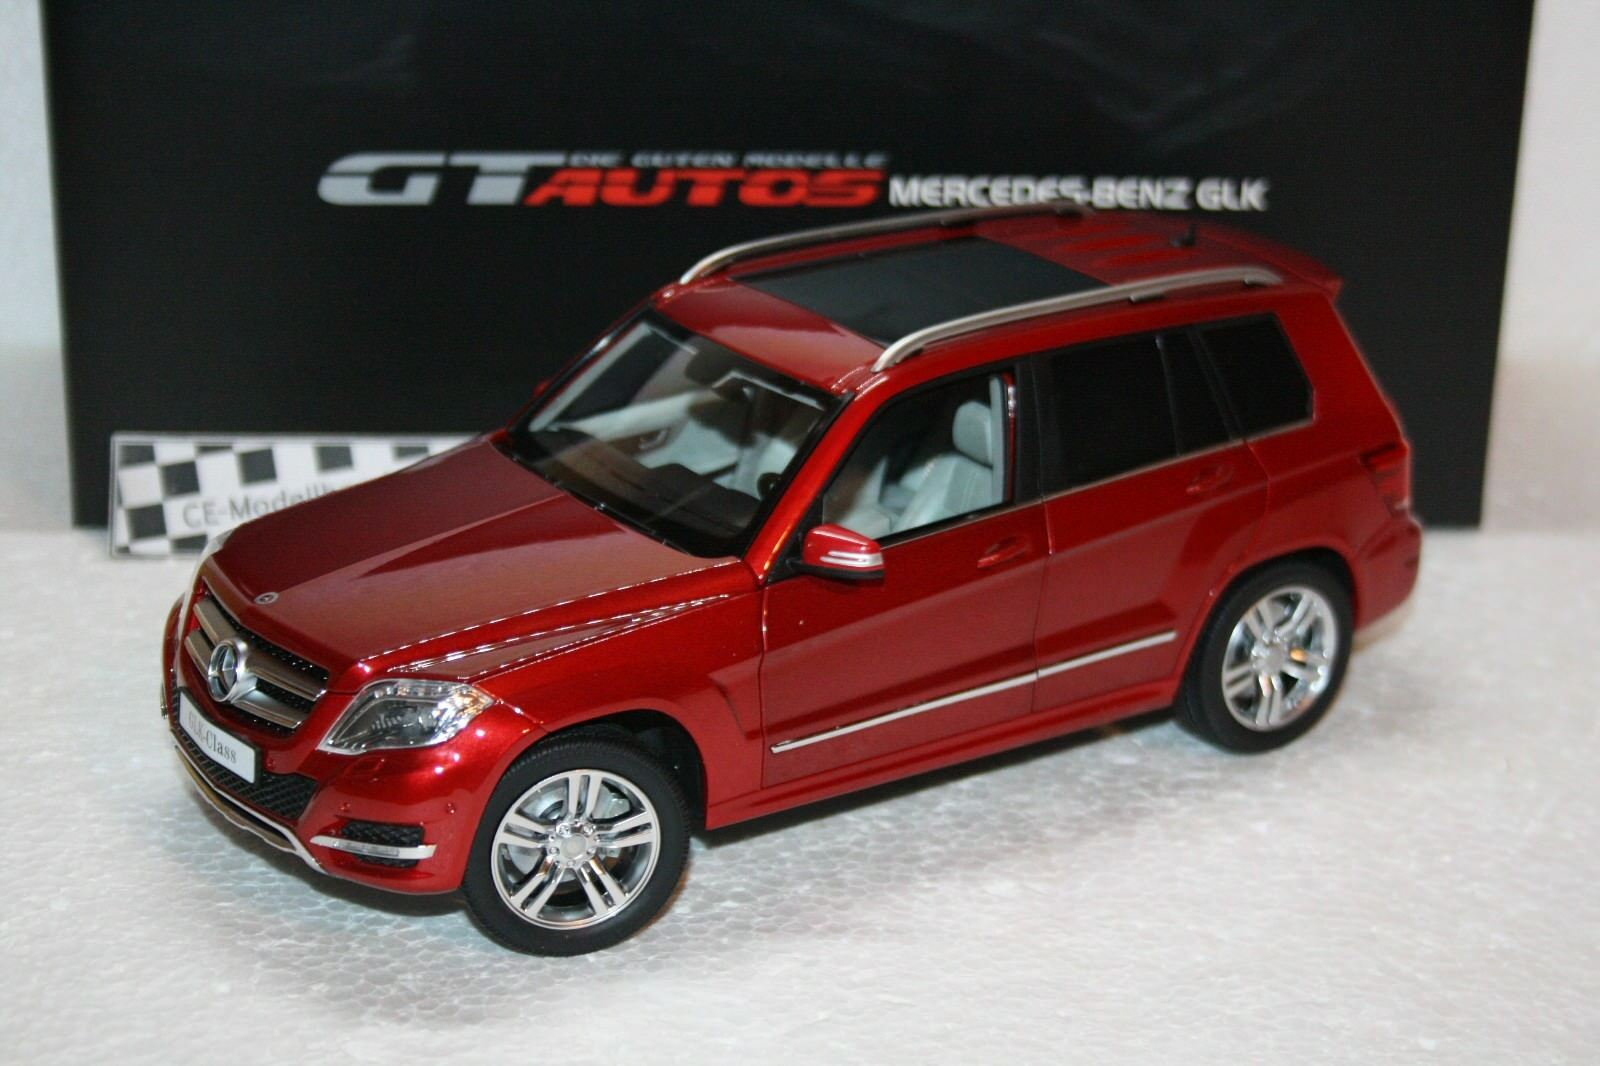 MERCEDES-BENZ GLK  2013  NUOVO  Welly GTA  1 18